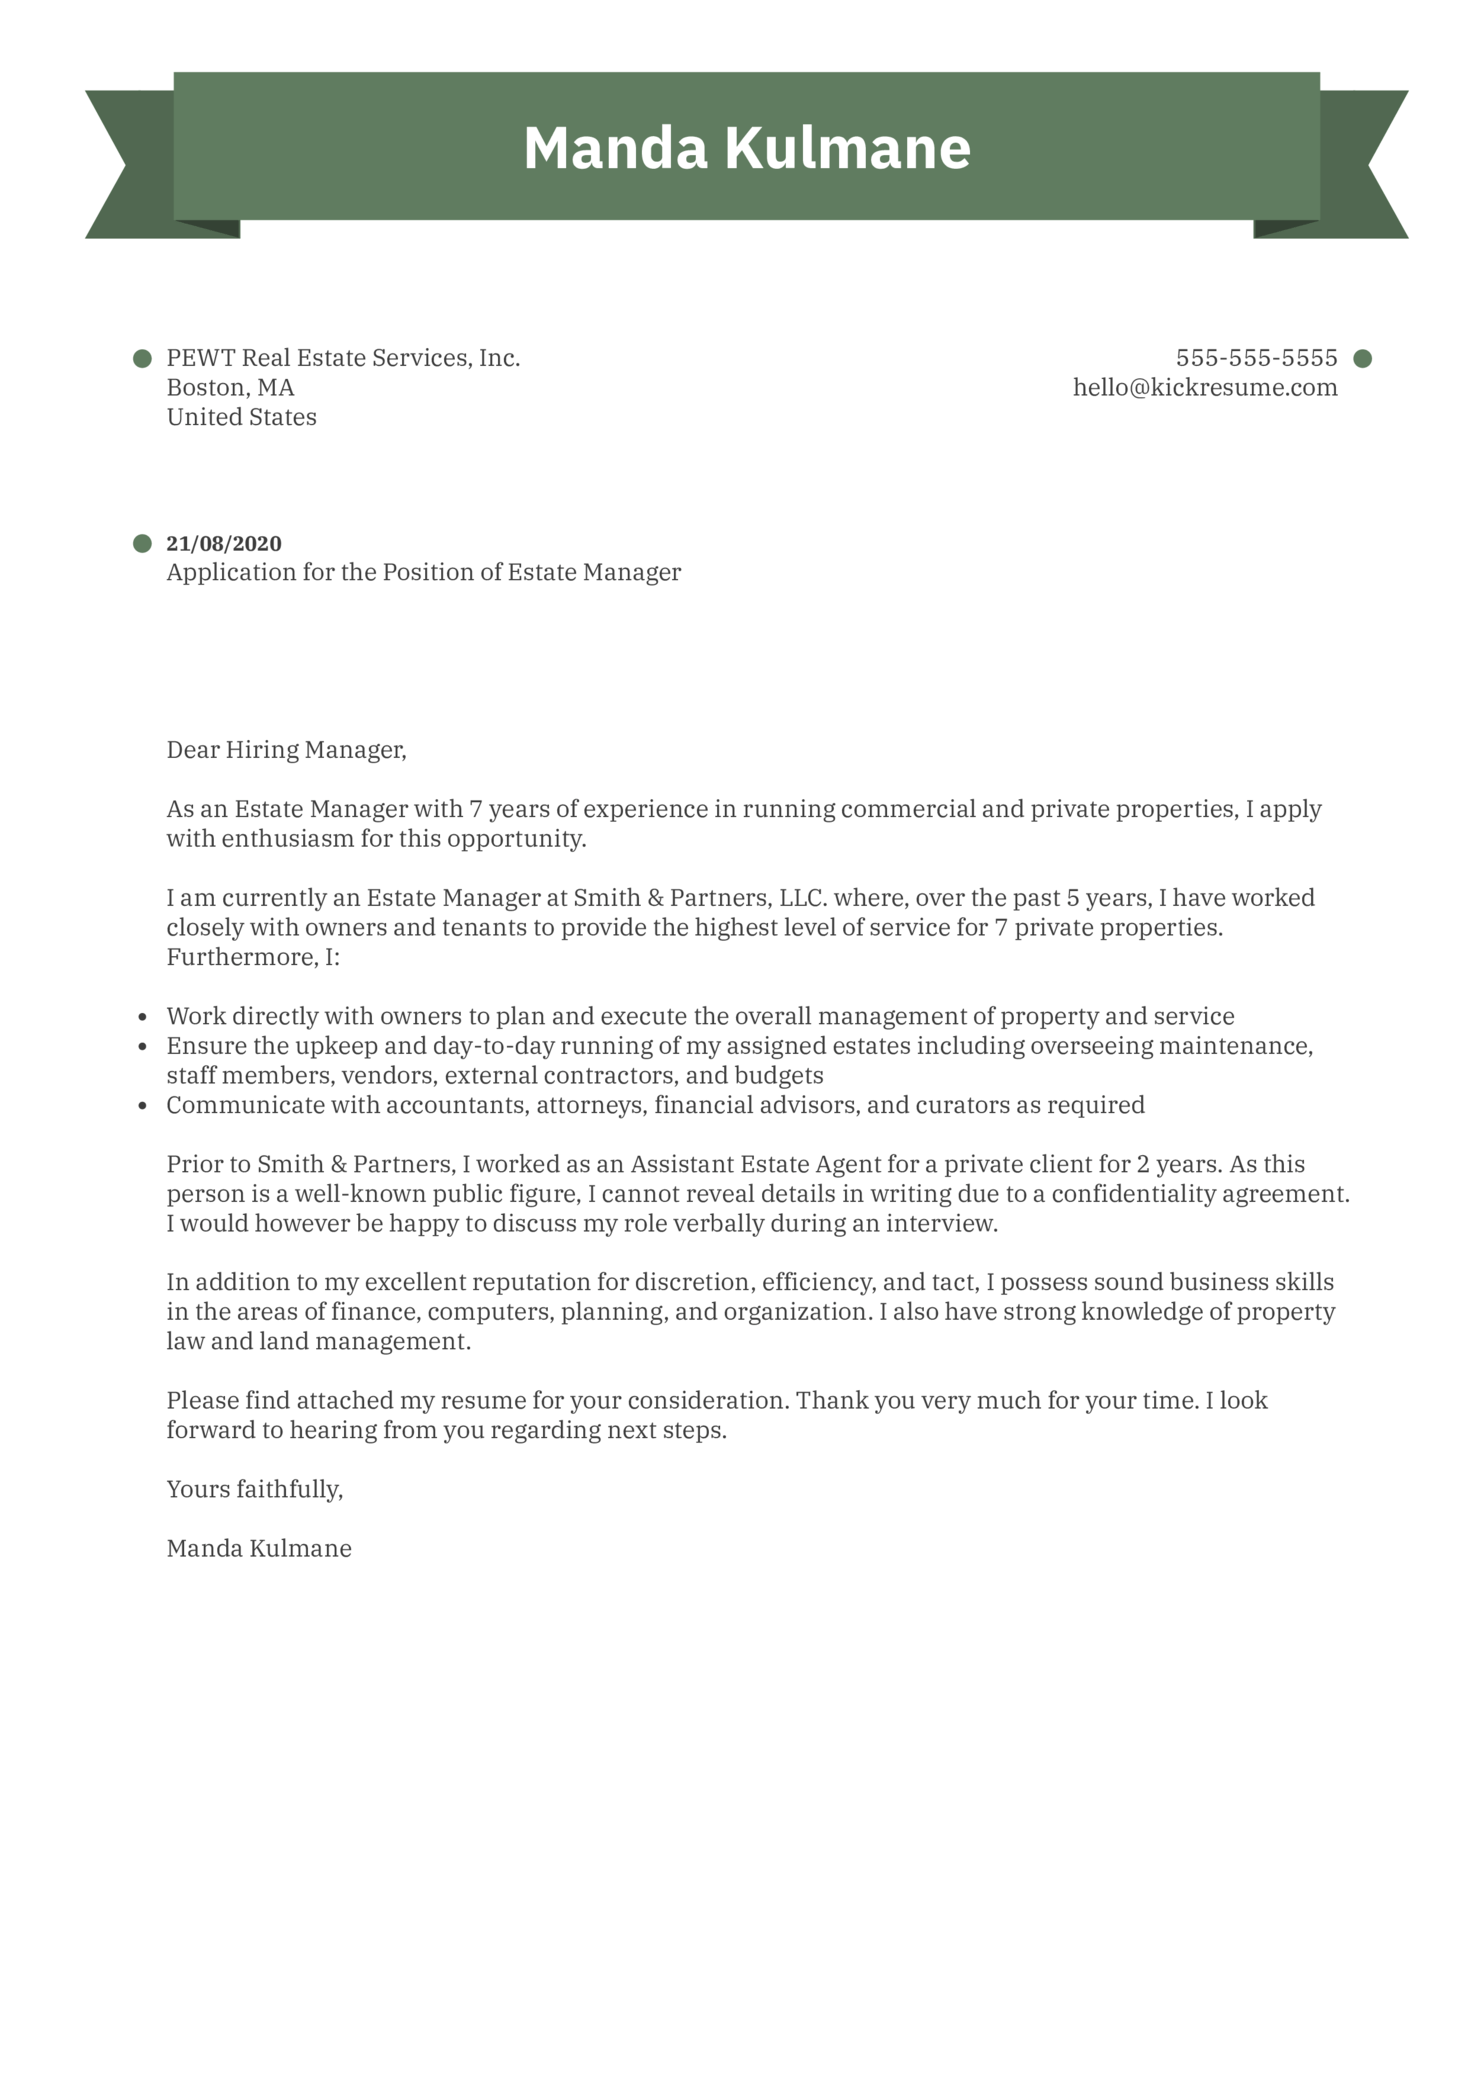 Estate Manager Cover Letter Example